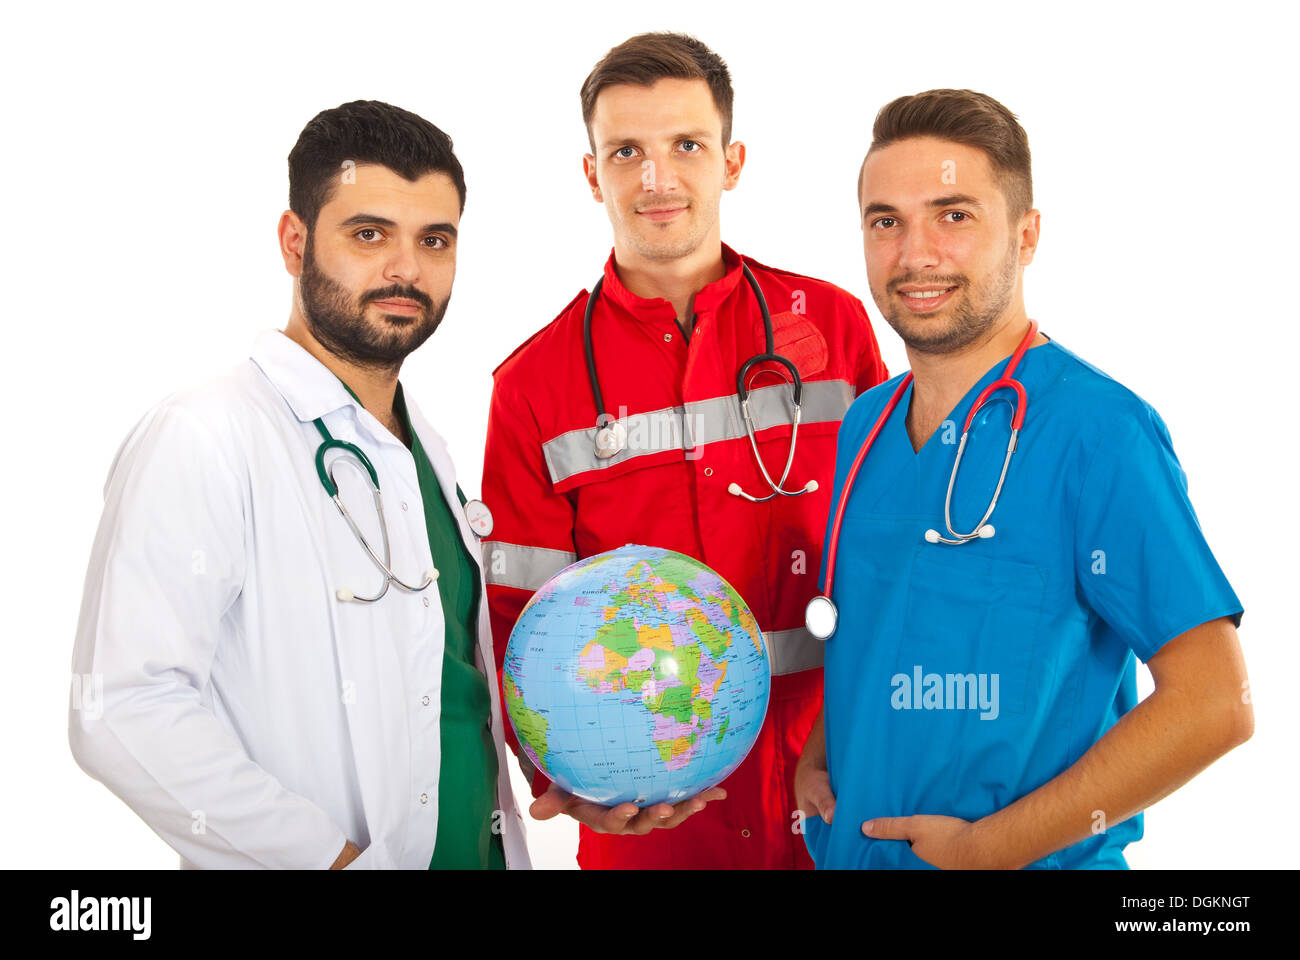 Different doctors males holding world globe isolated on white background - Stock Image